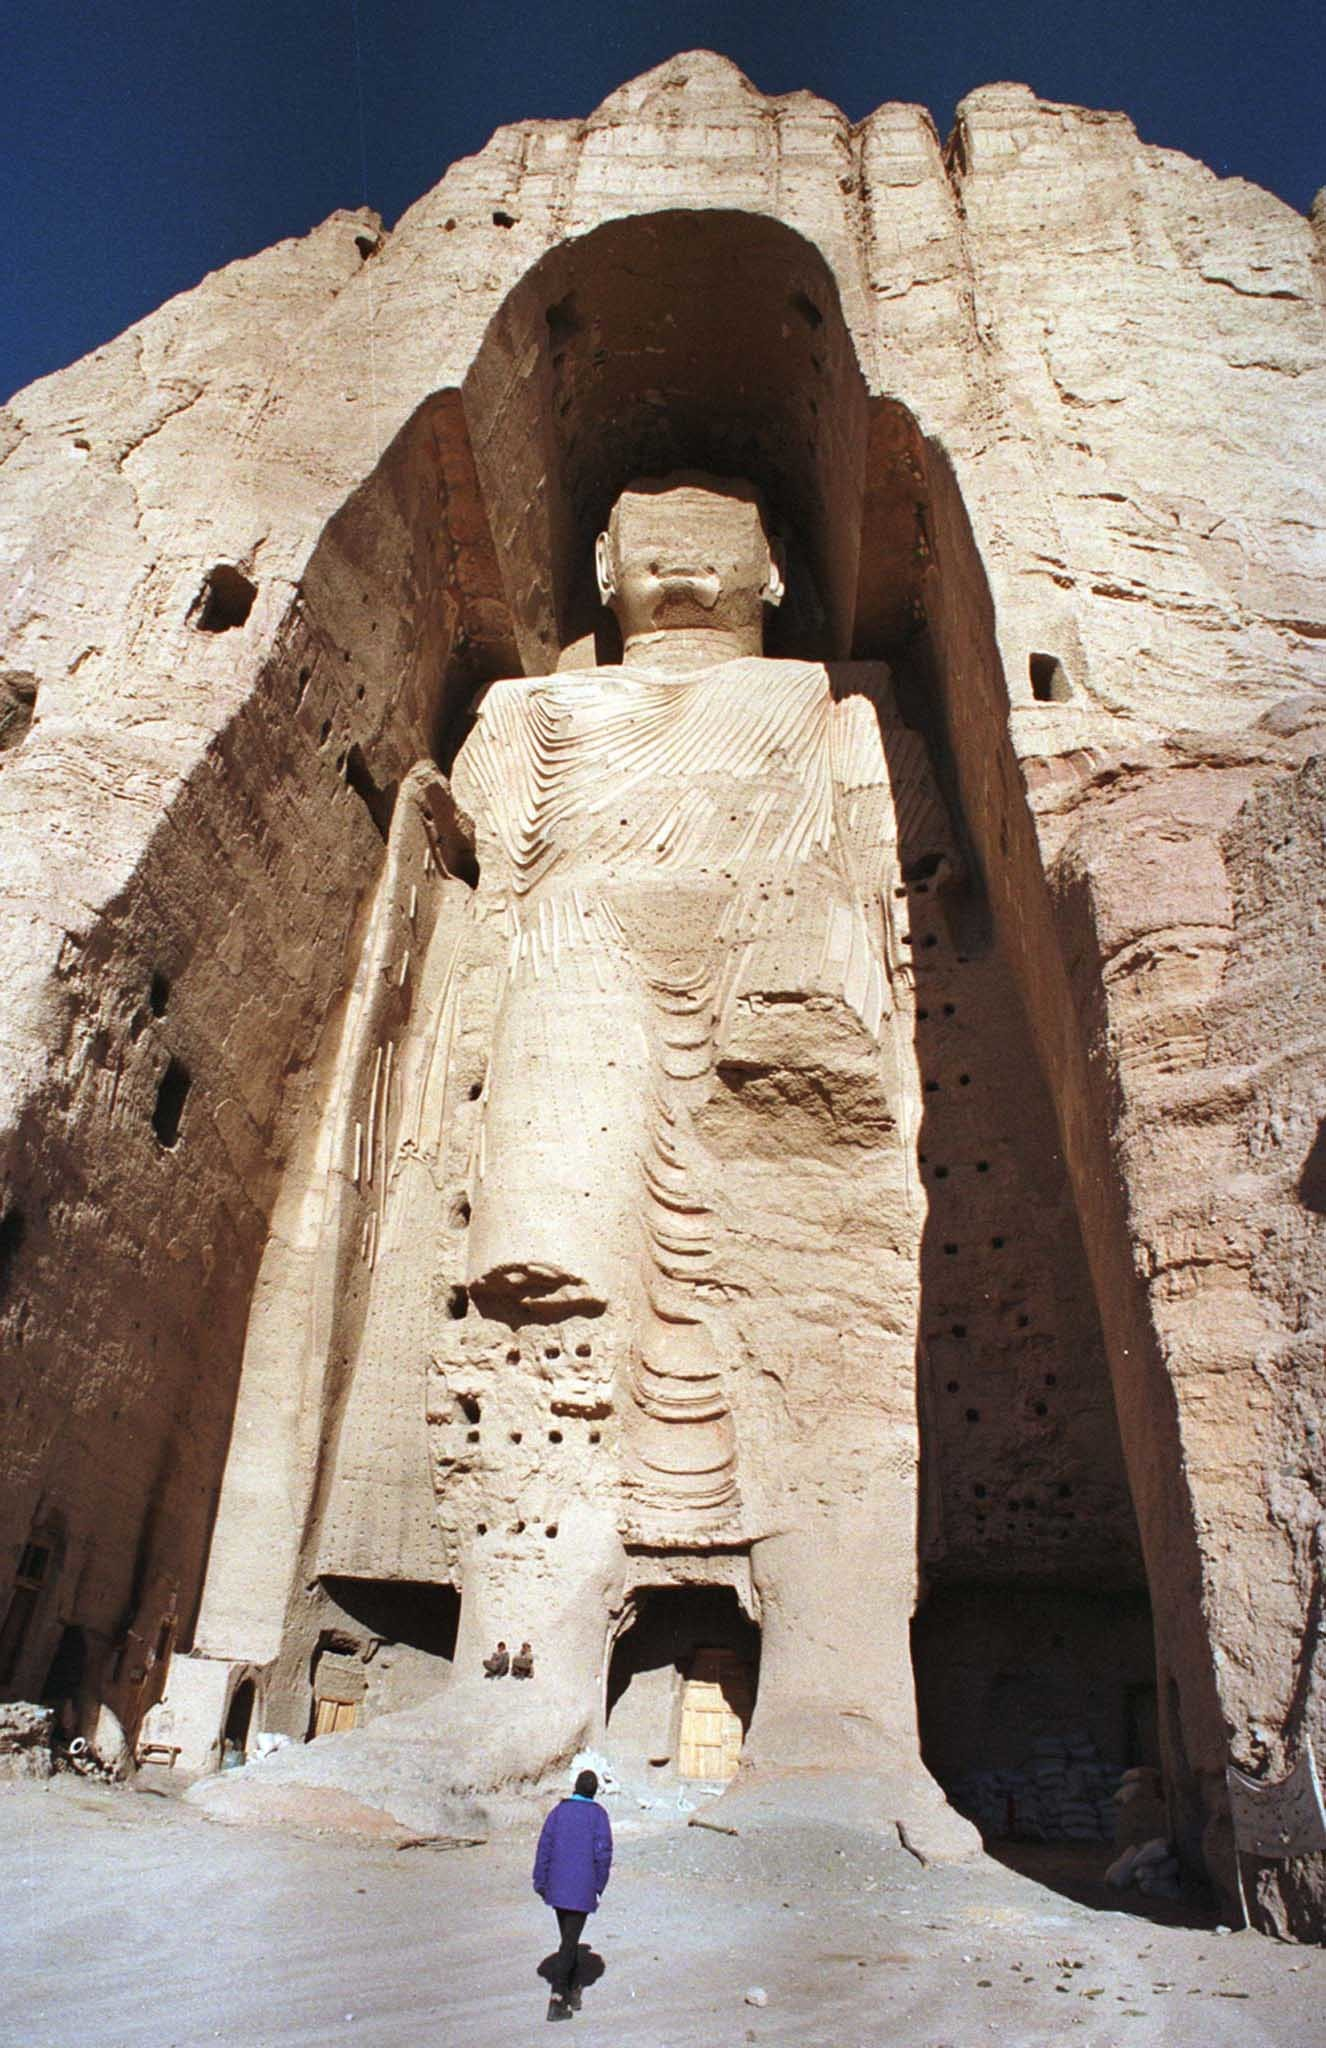 Swiss campaigners hoping to reconstruct one of two ancient Buddhastatues destroyed by the Taliban said on November 21, 2001 that theplan could offer a much-needed symbol of hope to Afghanistan. The55-meter-high (180 feet) Buddha statue in Bamiyan town in centralAfghanistan is shown on Dec. 22, 1997 before its destruction earlierthis year. REUTERS/Muzammil PashaRC/SV - RP2DRIQPZBAA